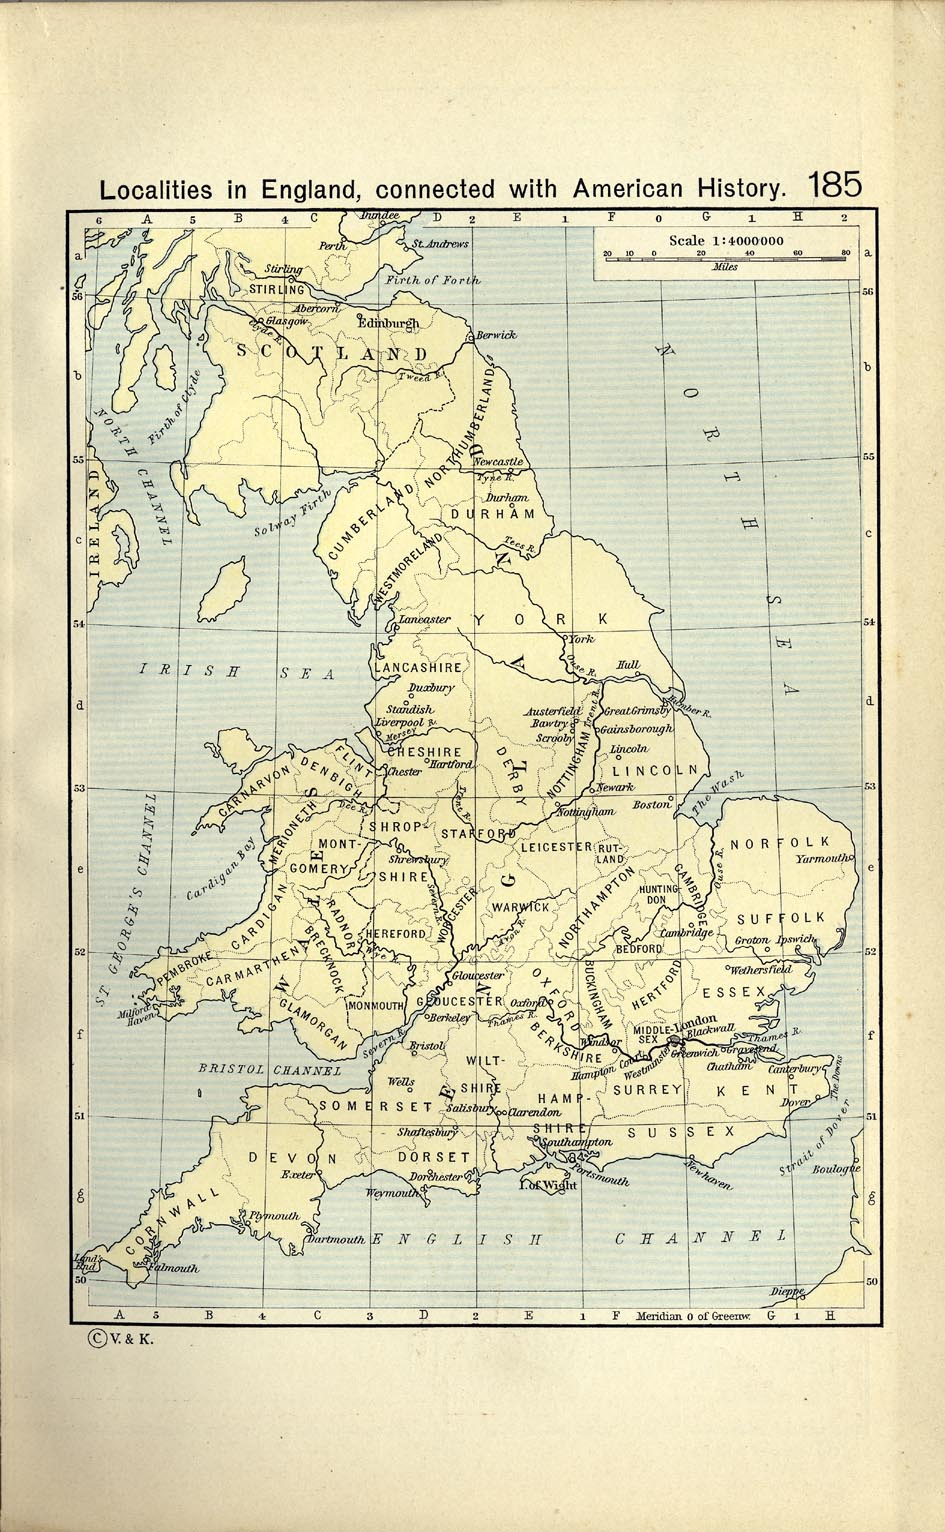 Map of Localities in England connected with American History 1911